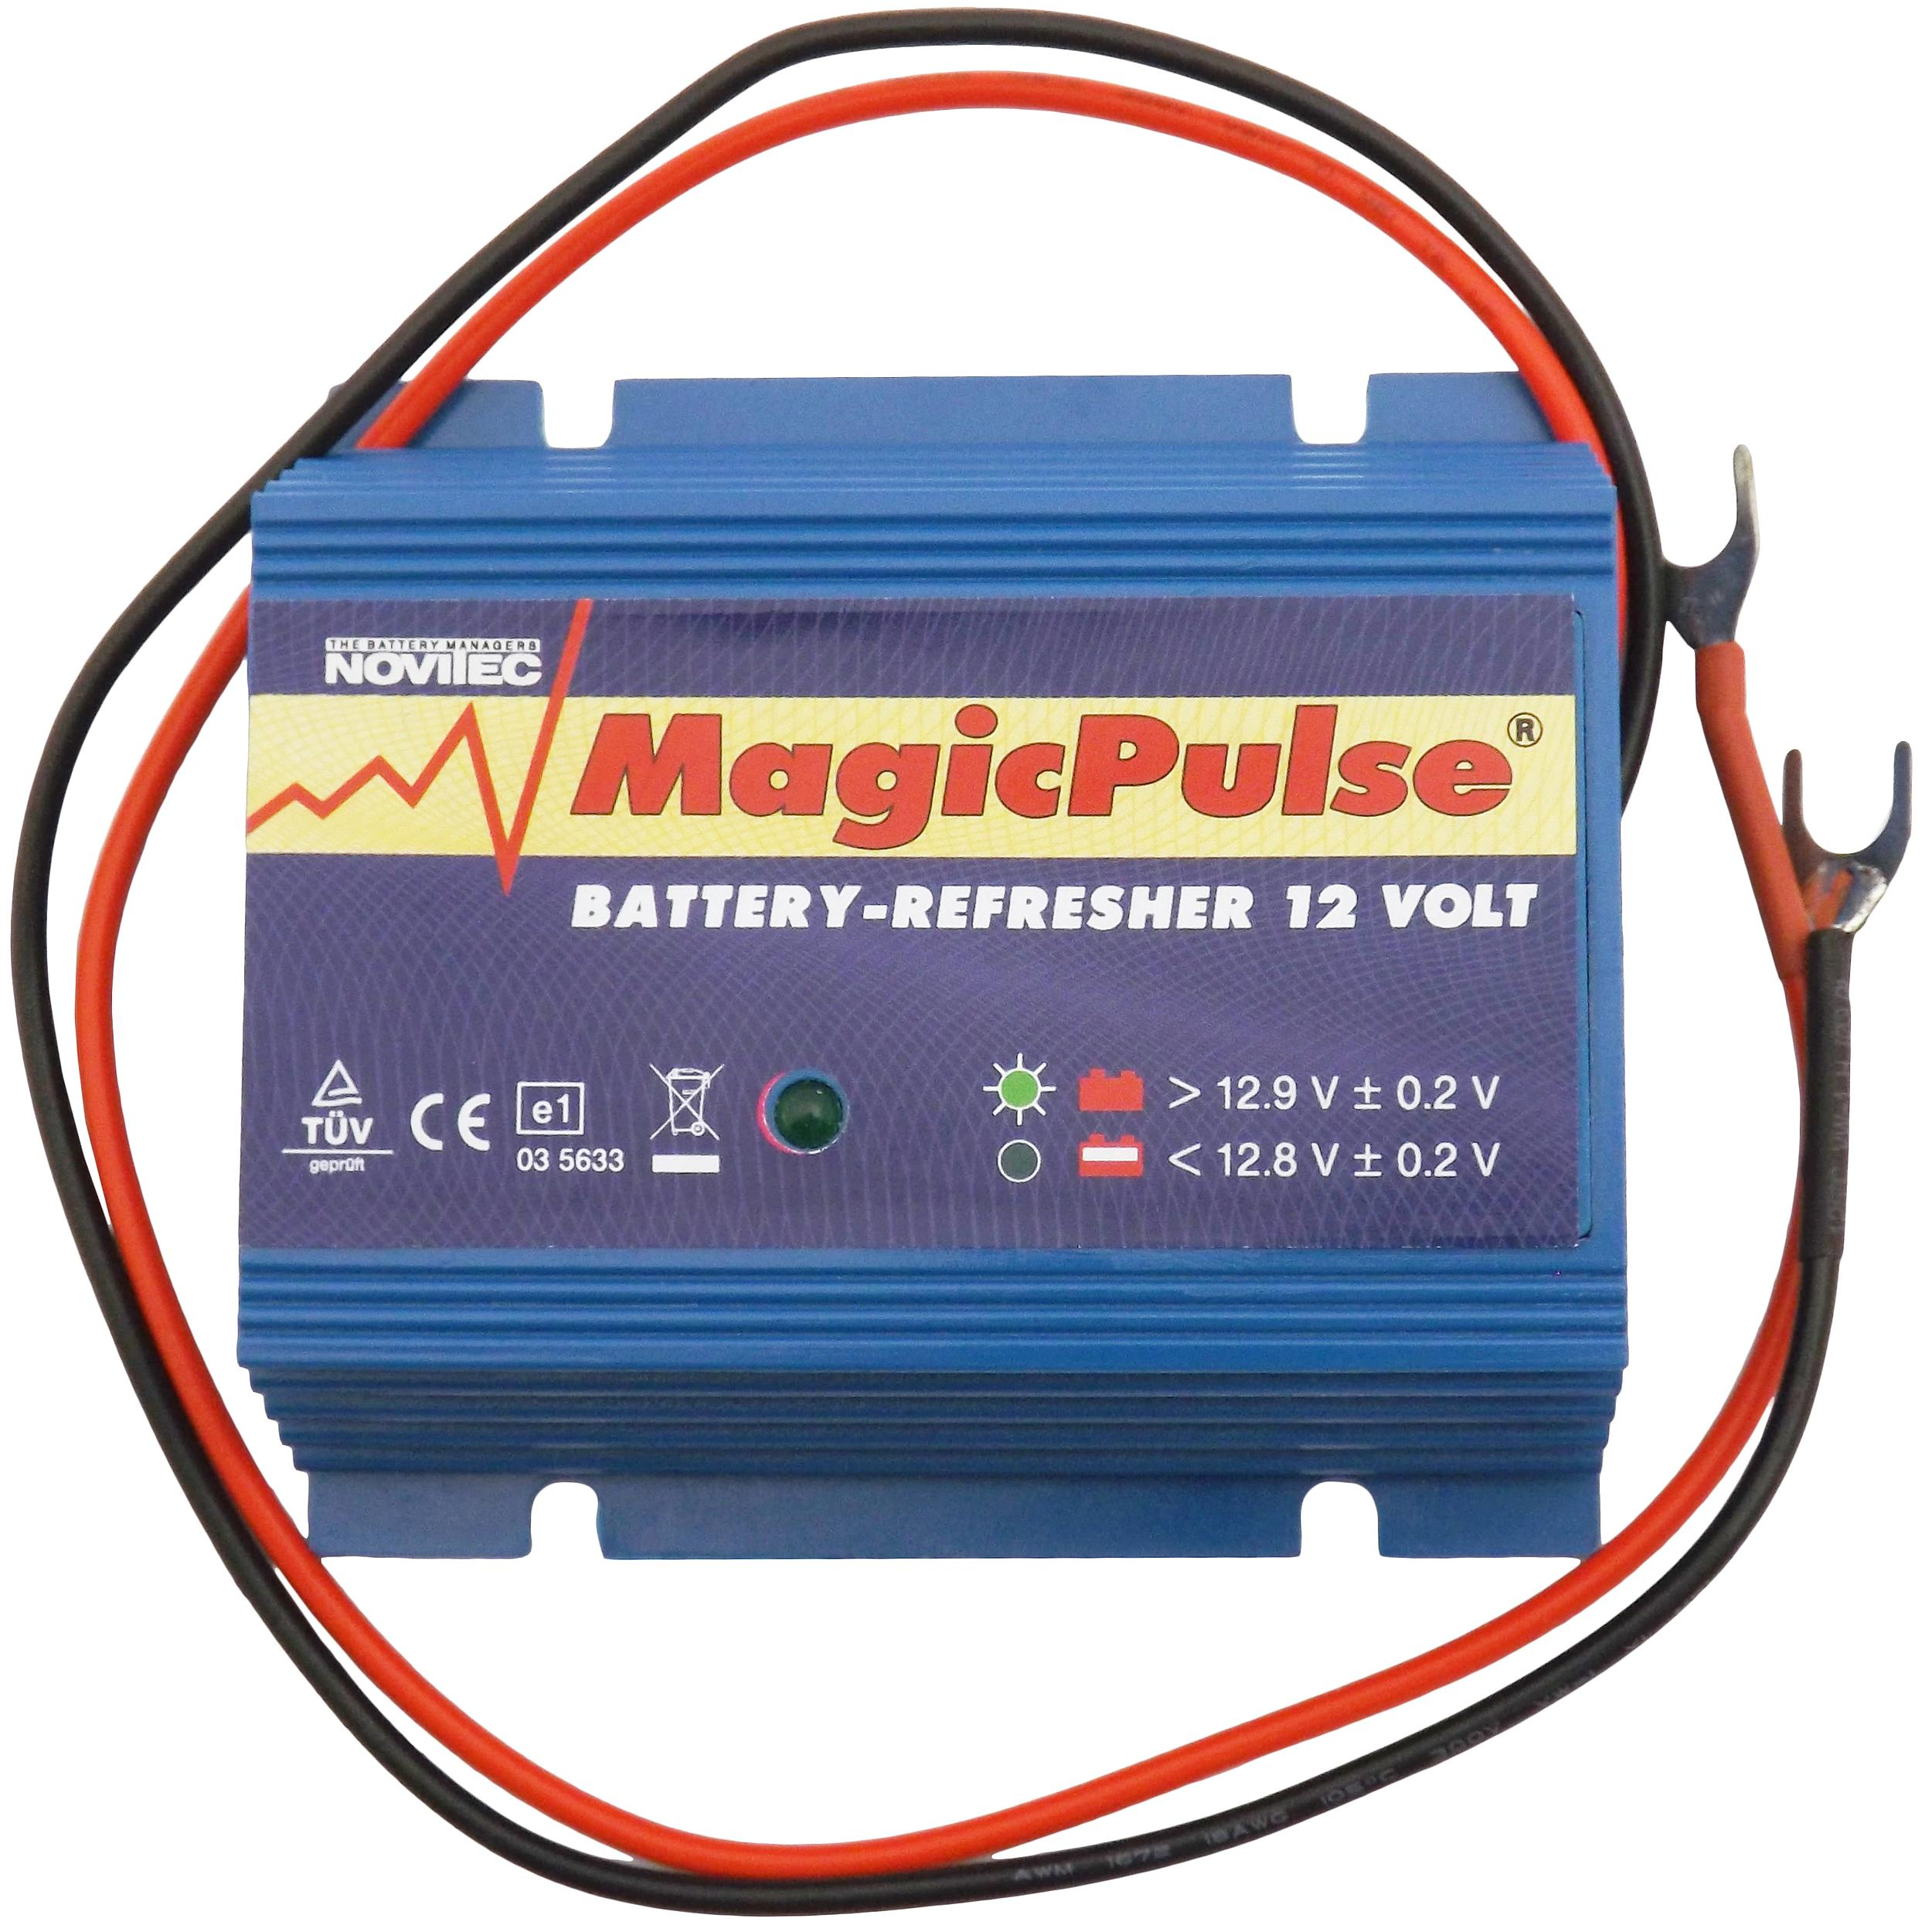 12 Volt Batteries Parallel On Wiring In Series Magicpulse Battery Refresher Extend The Life Of Regenerate Your For Longer